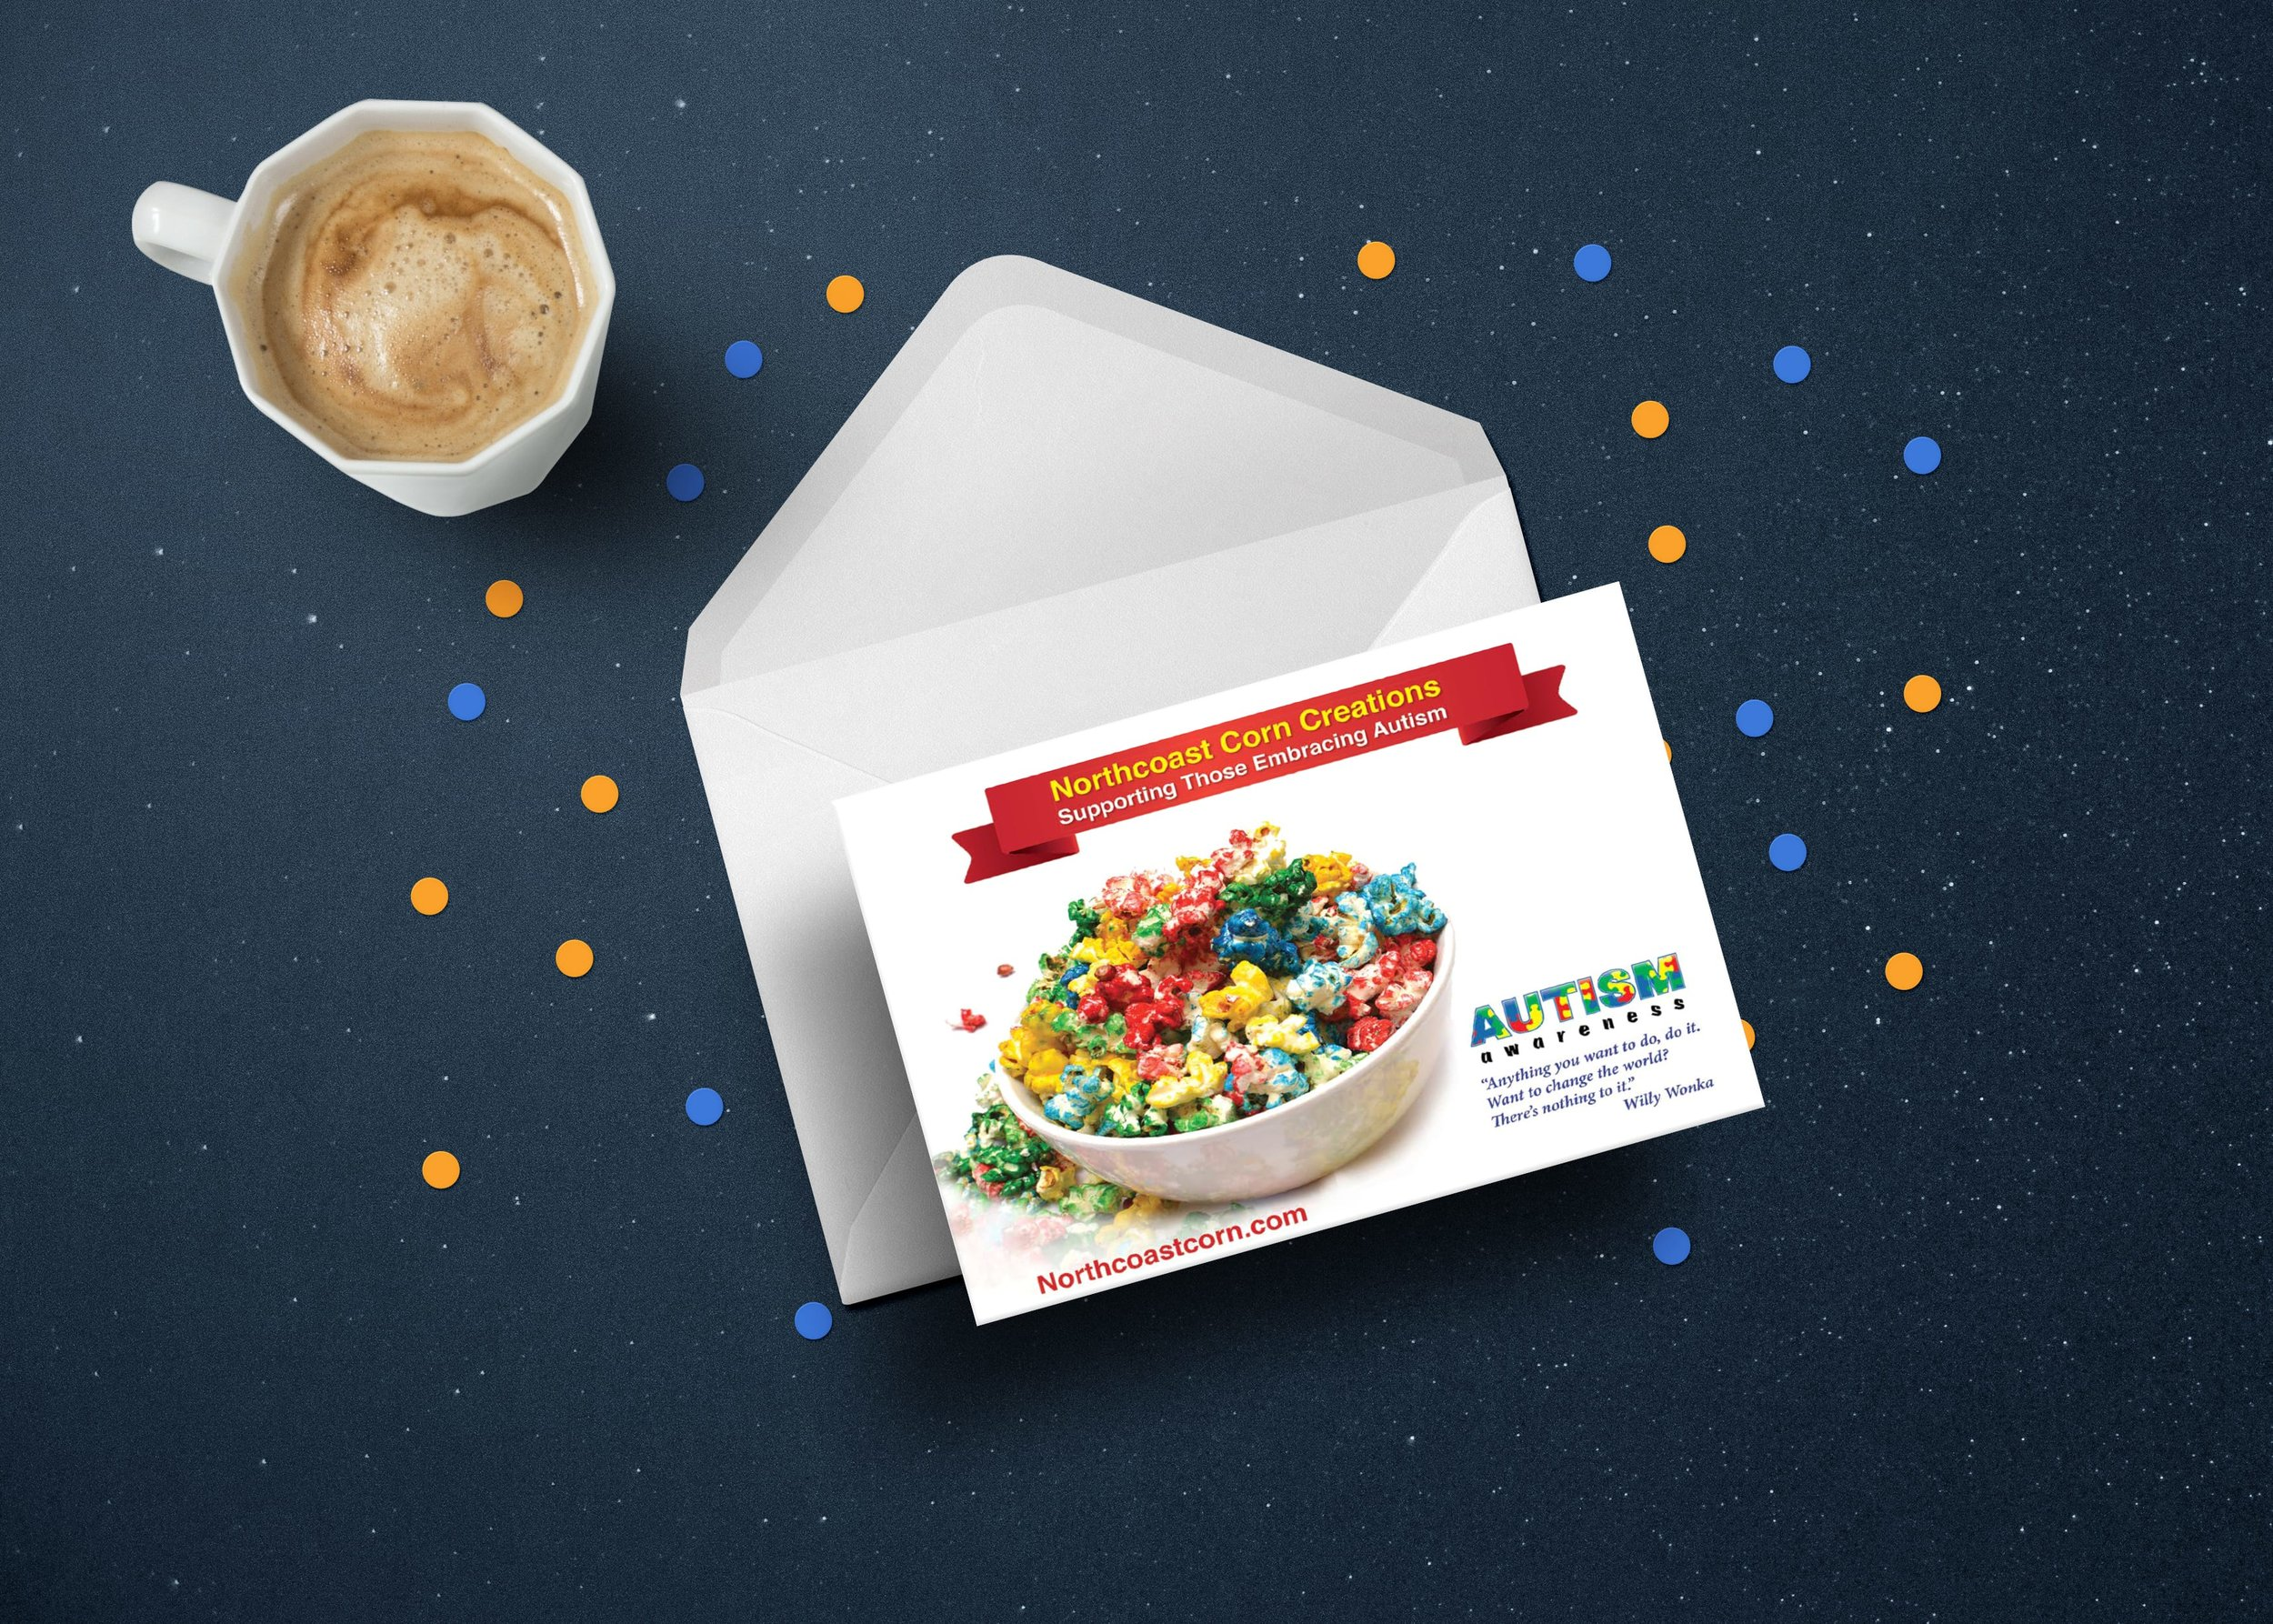 Personalized Cards! - Sending our popcorn to someone special? Why not include a personalized card with your order?! We'll print it directly onto our custom-made Northcoast Corn Creations cards so that they get the message.